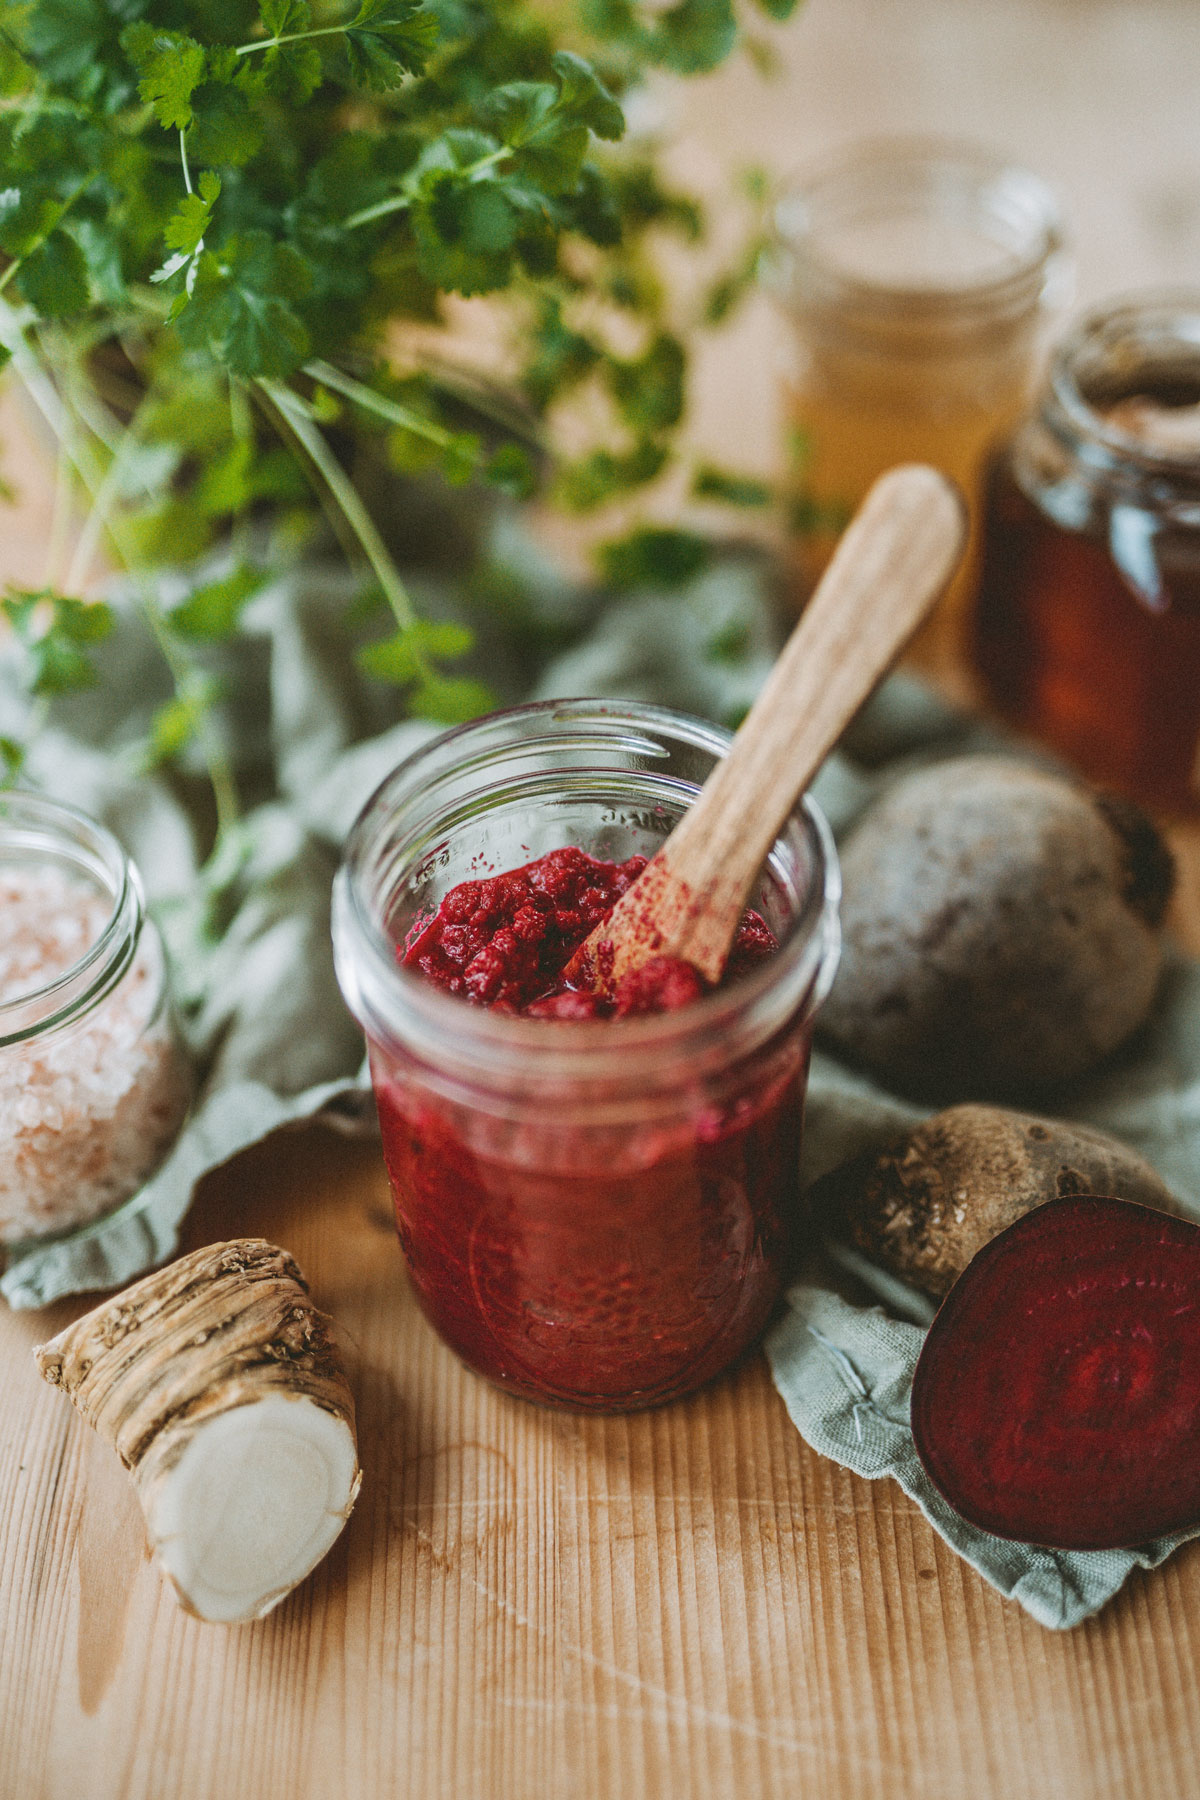 Fresh horseradish recipe with beets in a jar